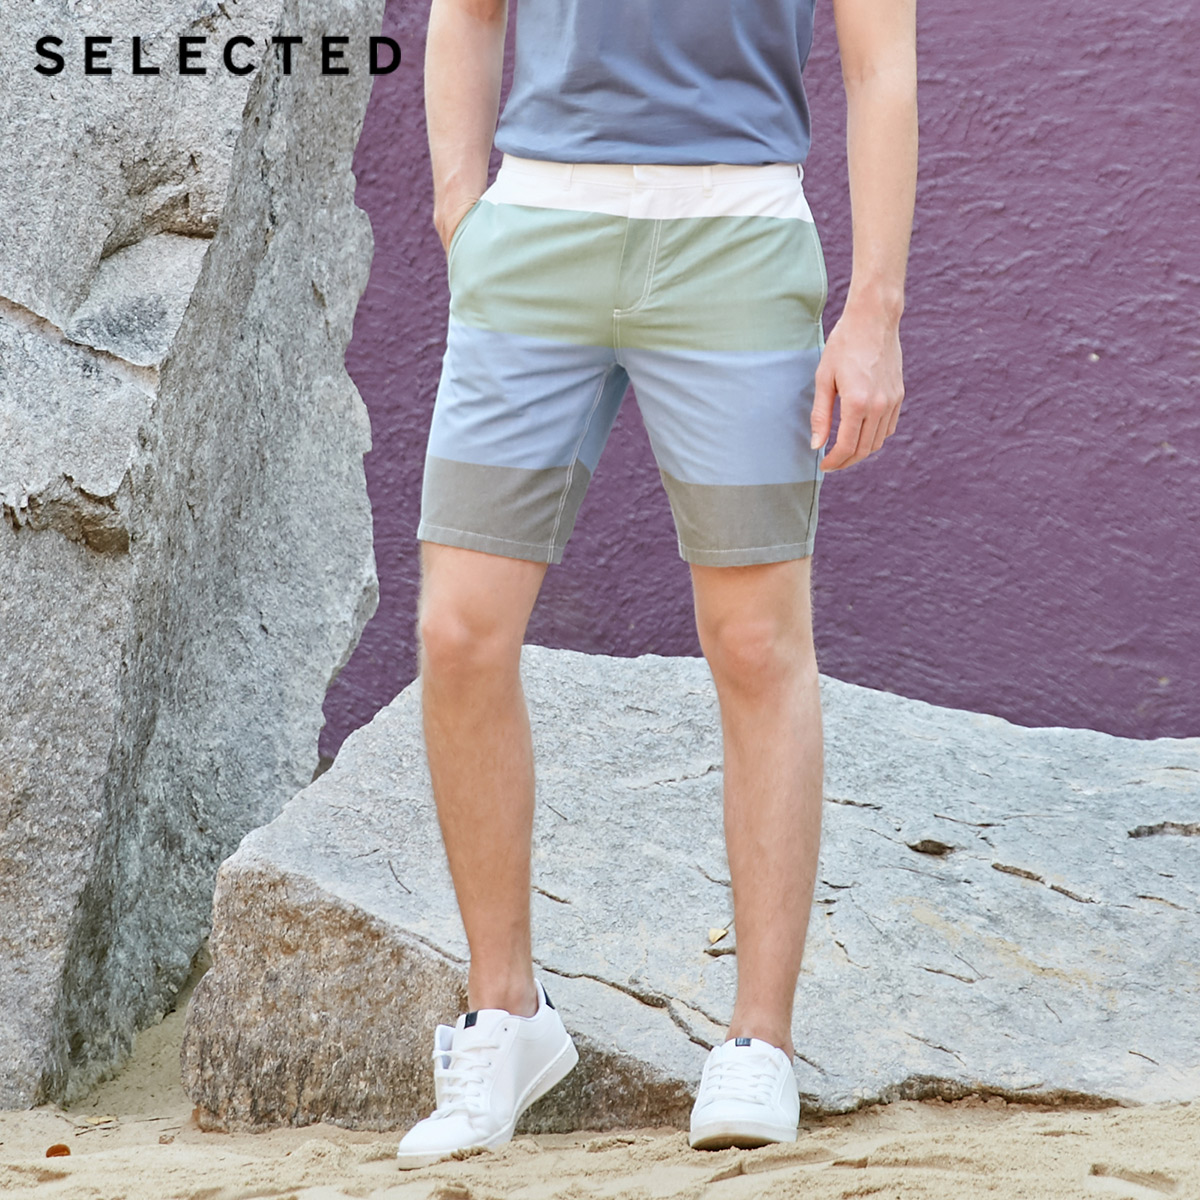 SELECTED Men's Spring 100% Cotton Assorted Colors Straight Fit Striped Shorts C|4192SH508